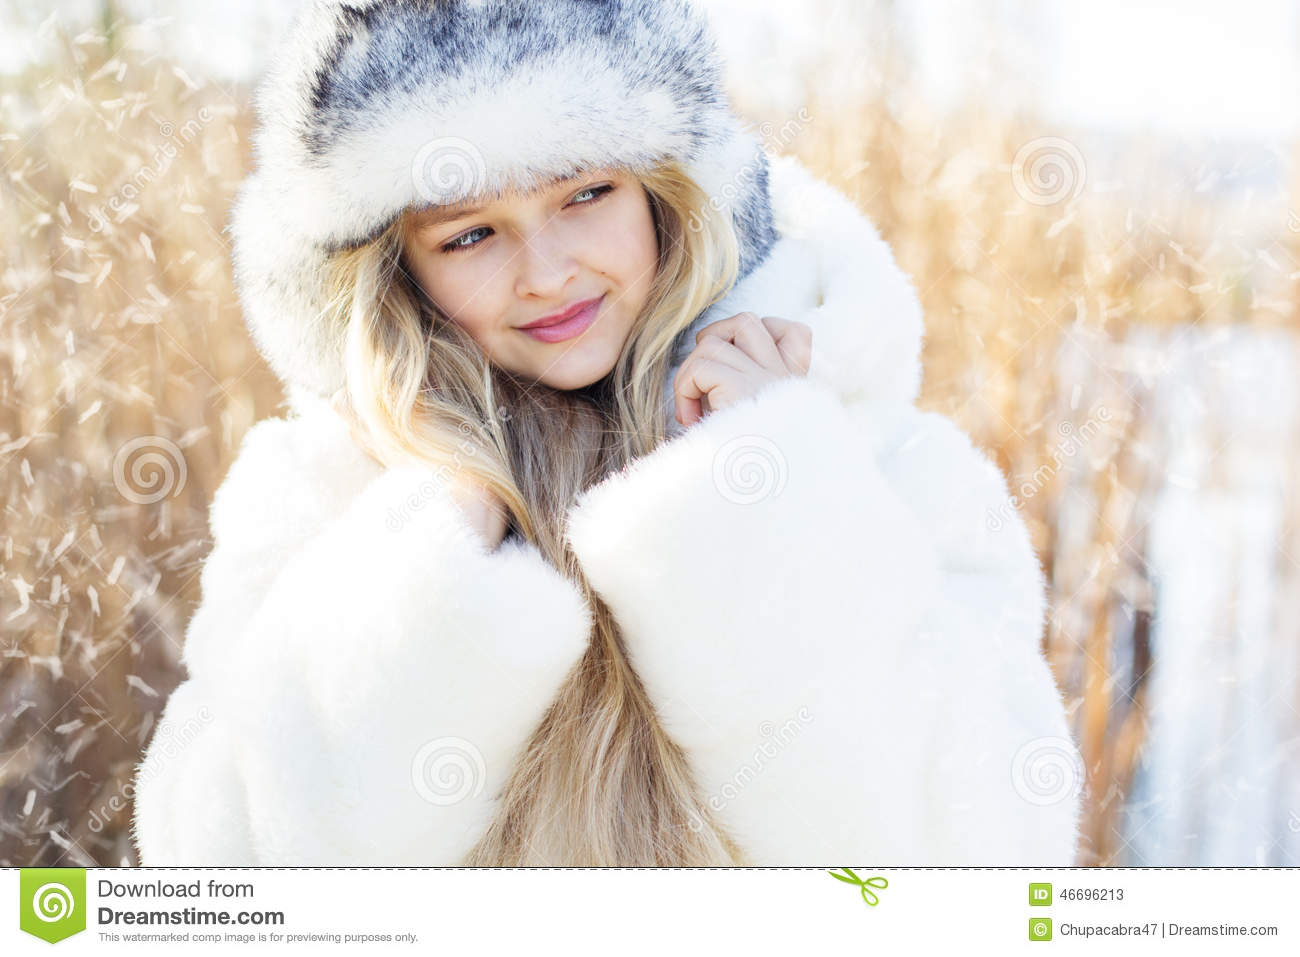 d21c541ee Cute Little Girl In Winter Clothes Outdoors Stock Image - Image of ...